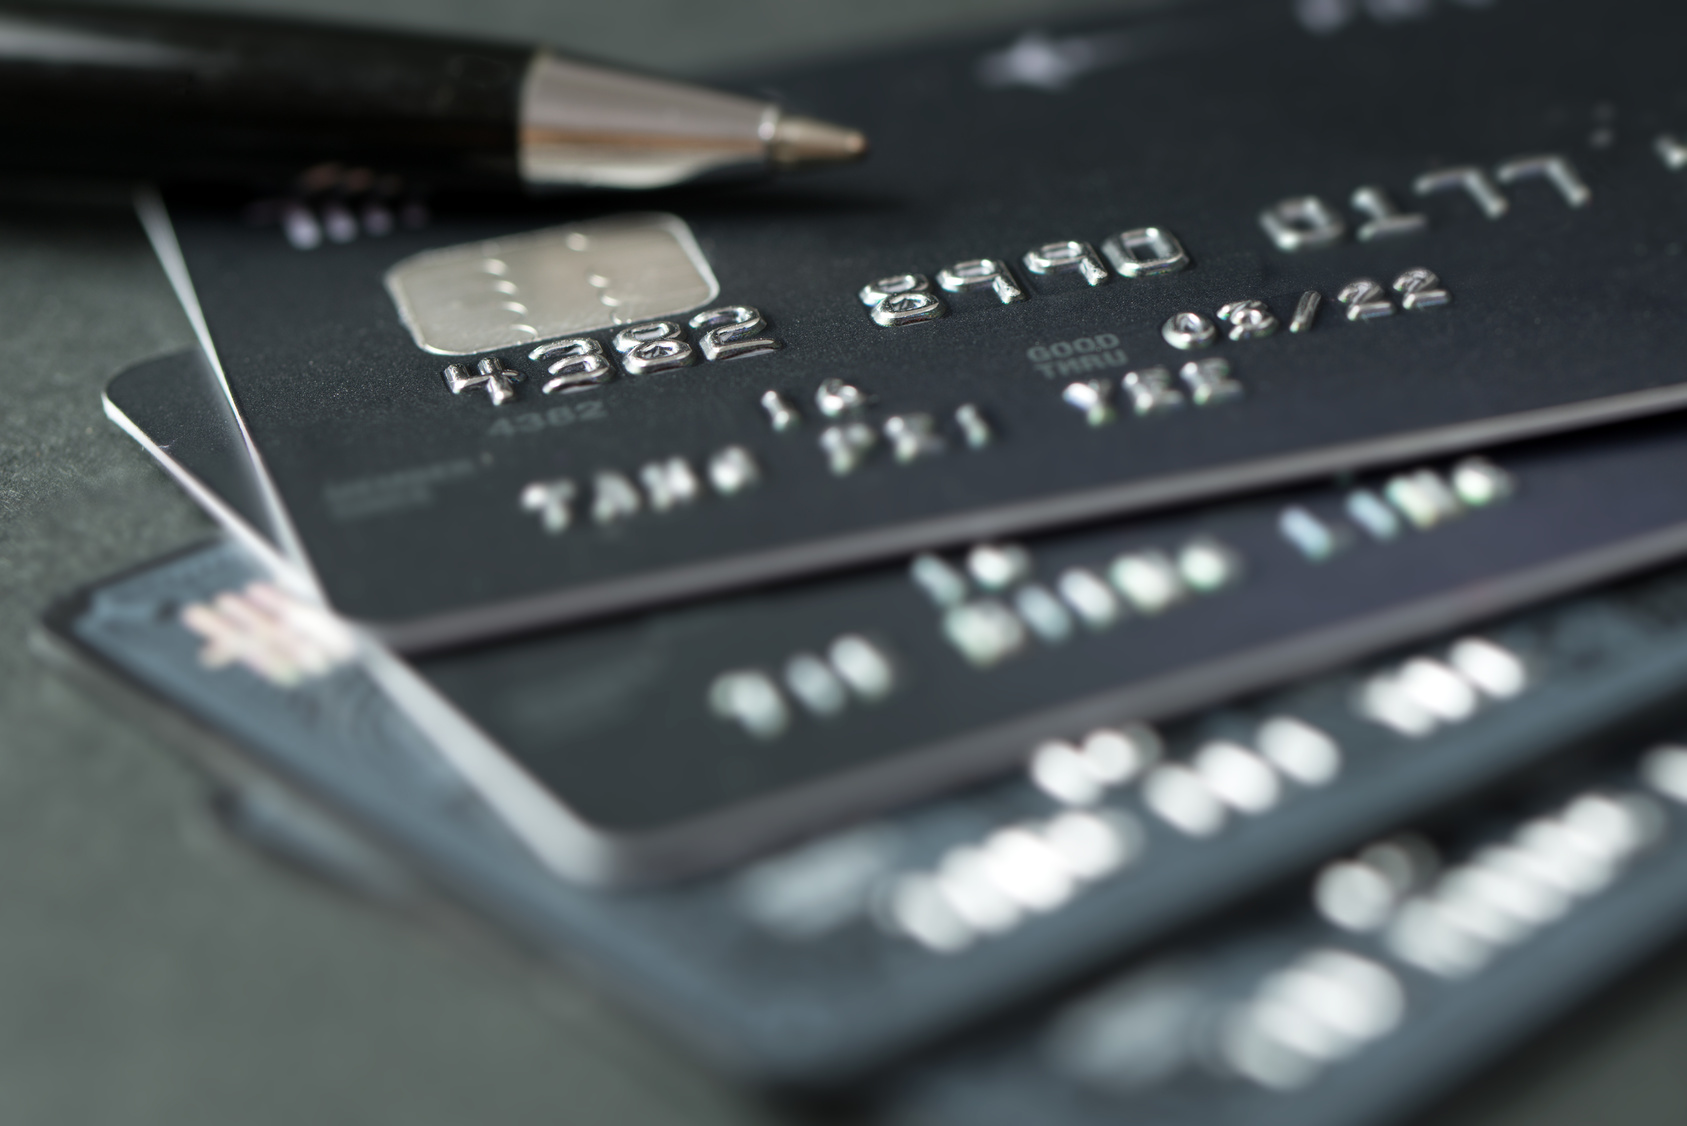 Top 5 Reasons Small Business Owners Use Personal Credit Cards: